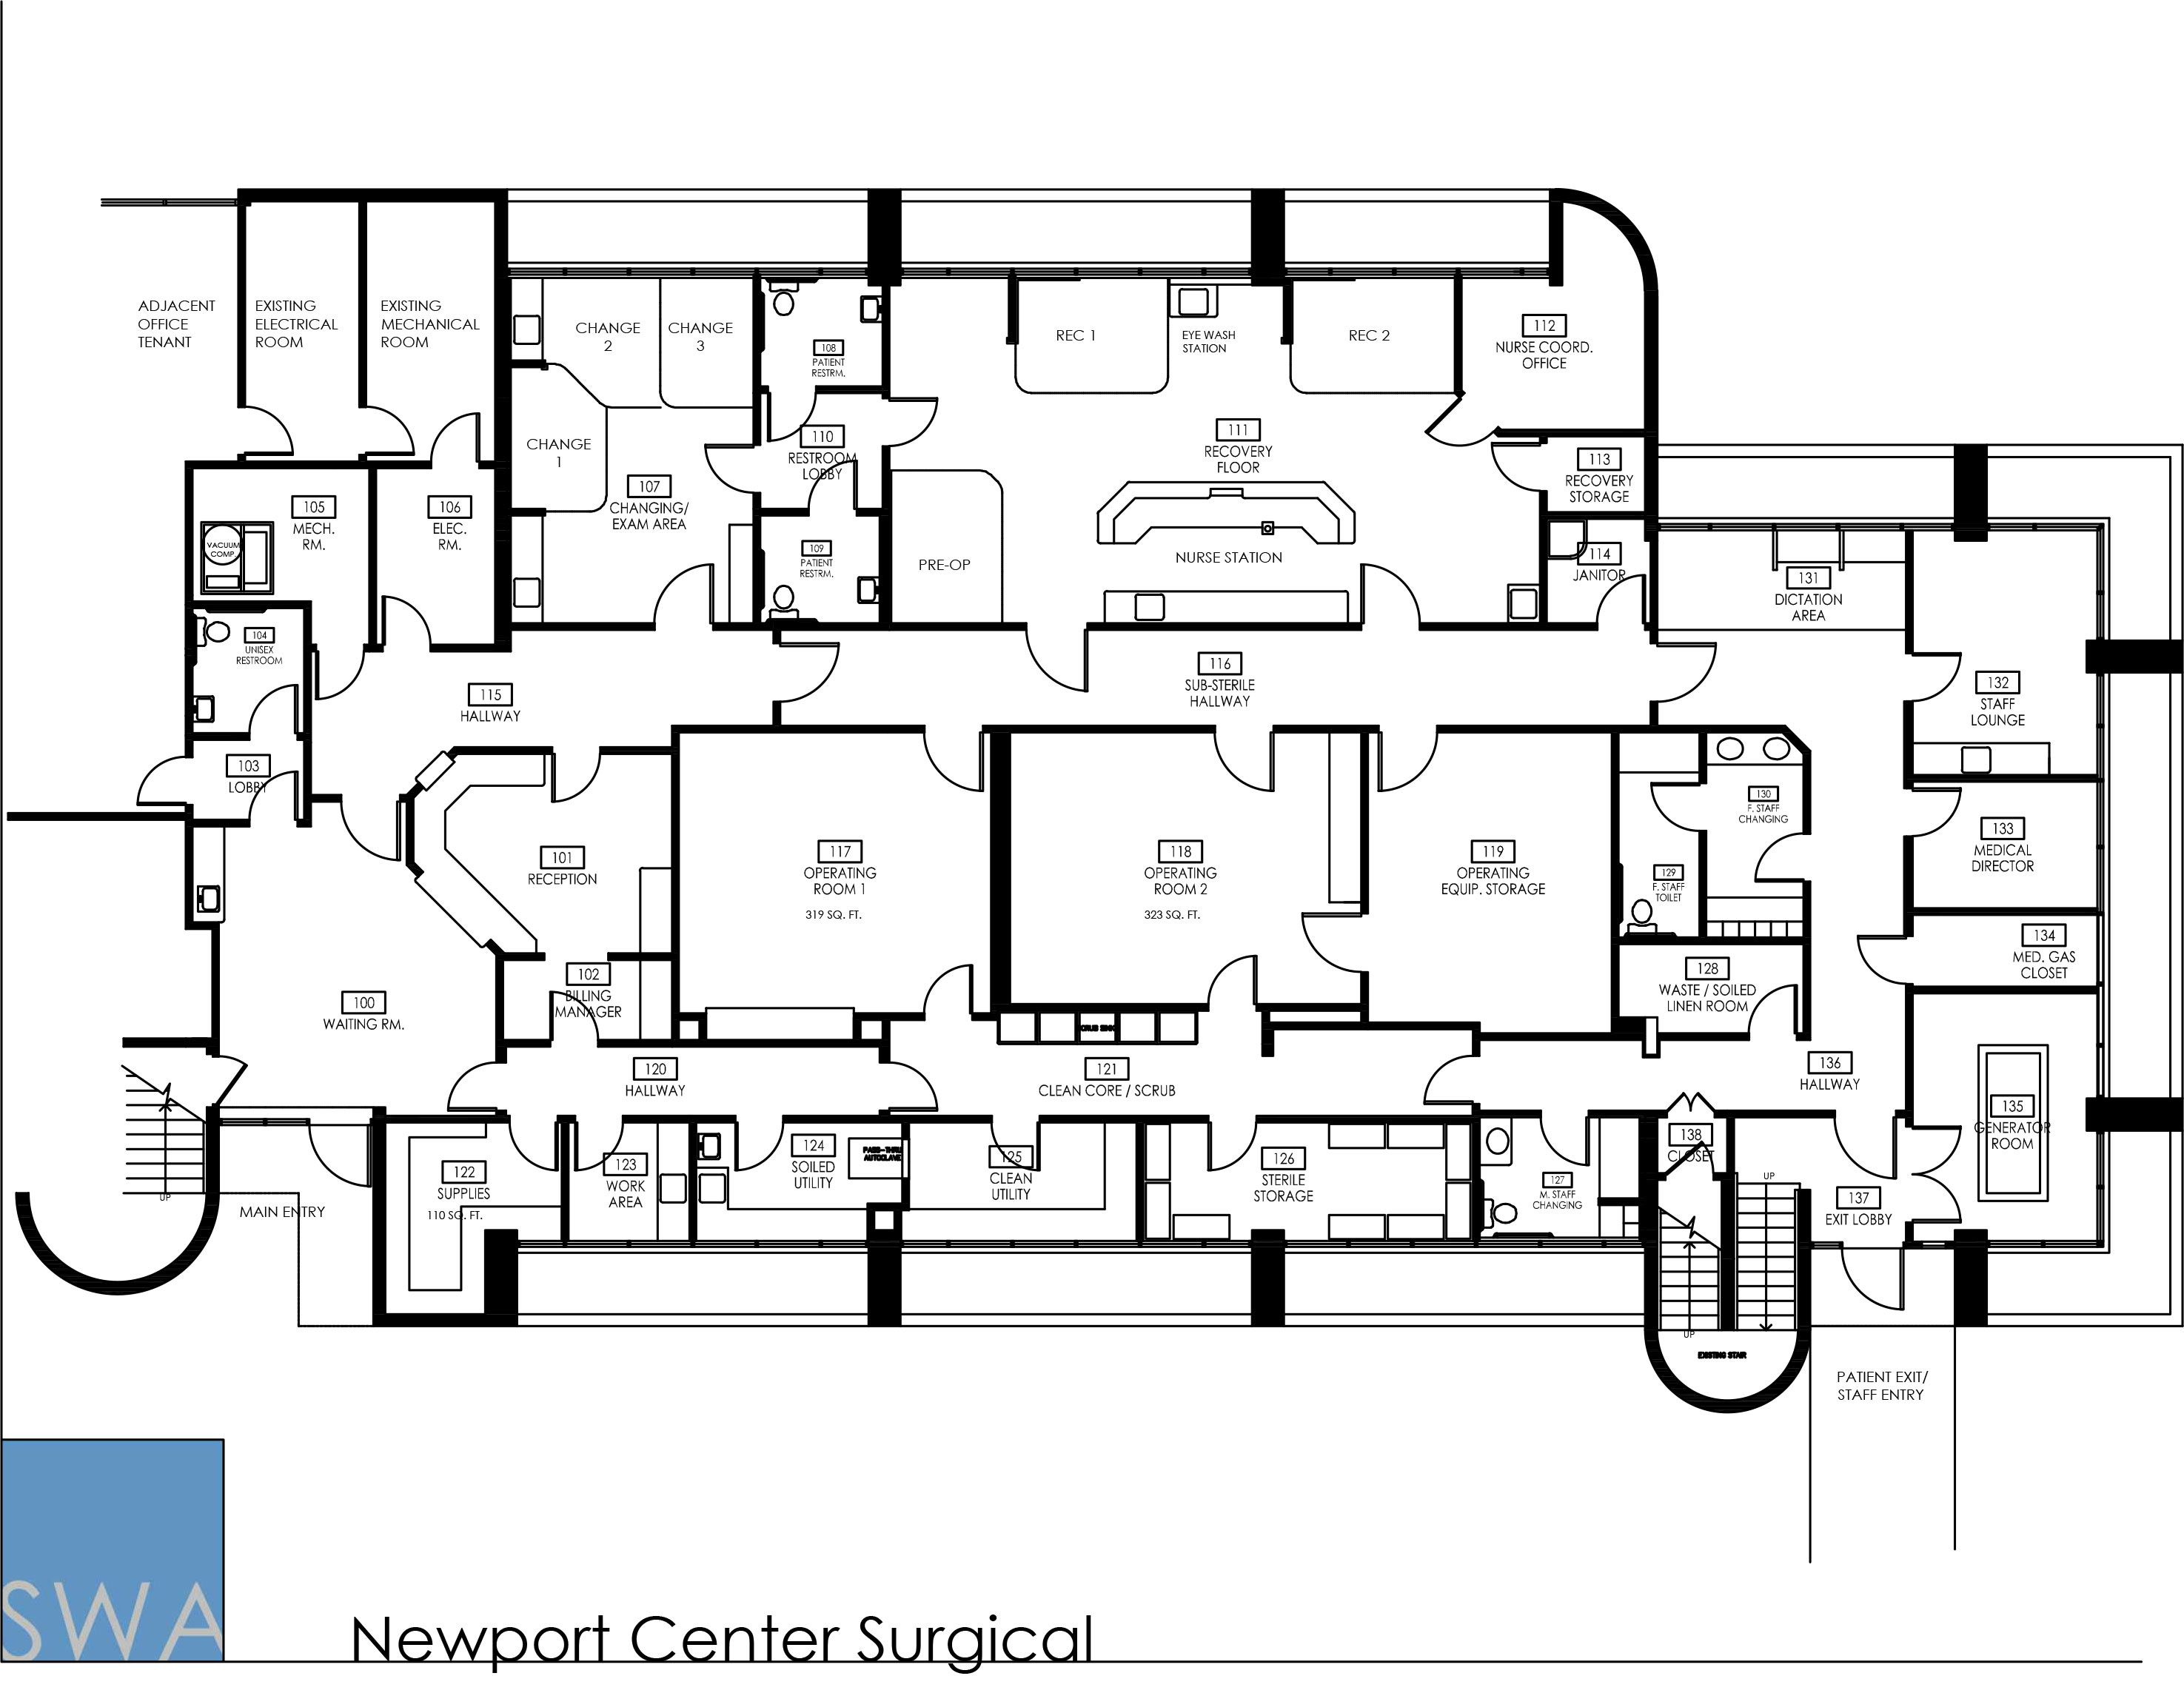 Oshpd 3 Ambulatory Surgery Center 3 Operating Rooms With